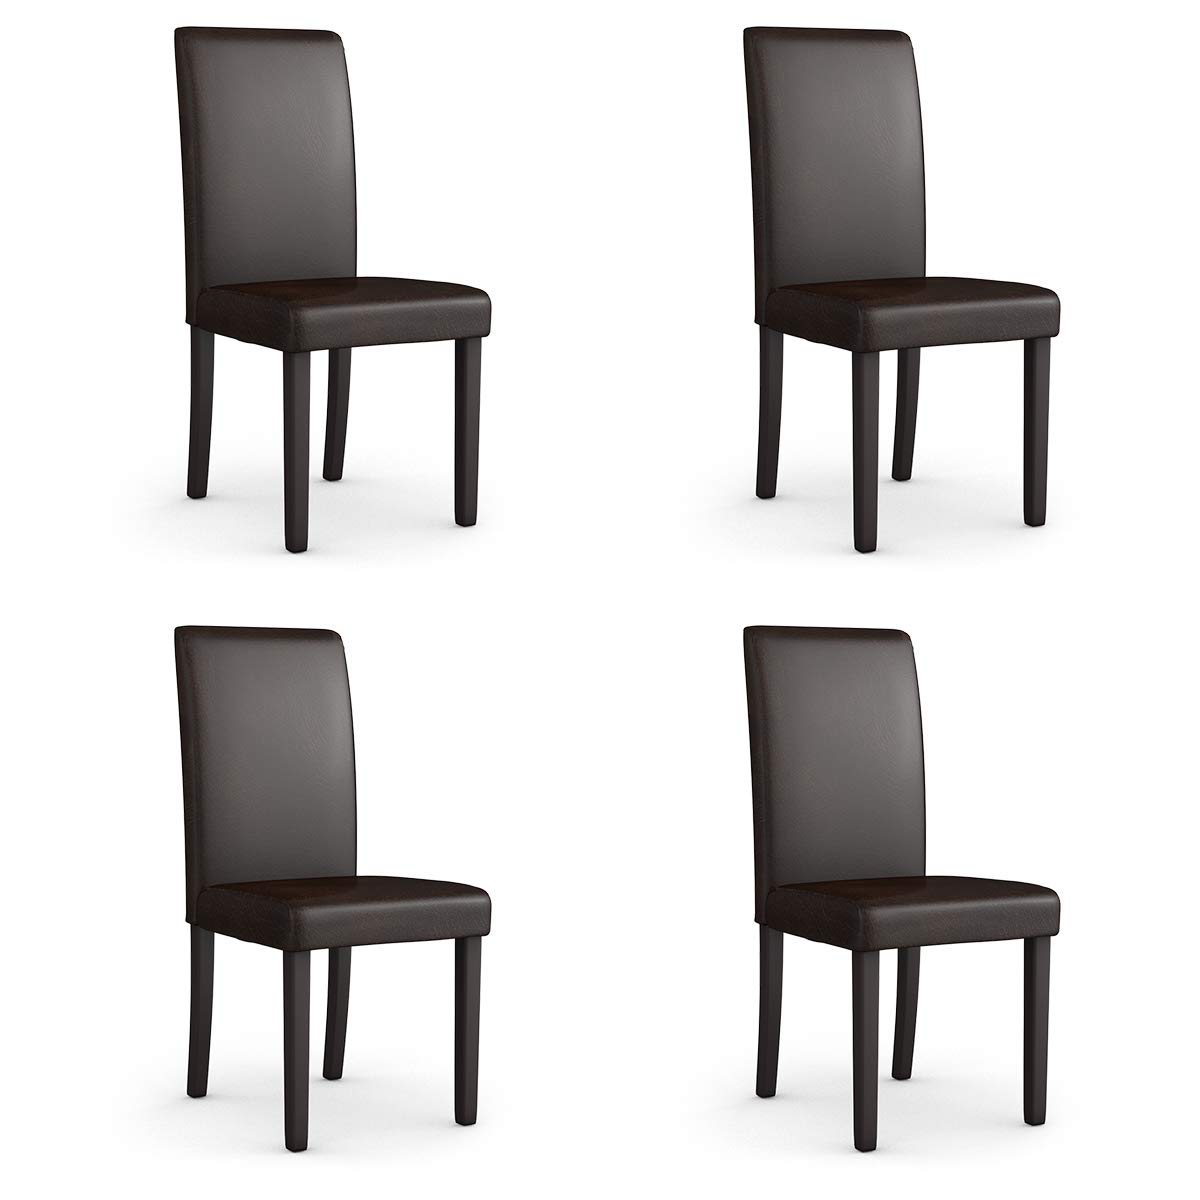 Giantex Set of 4 Upholstered Dining Chairs Set W/PU Leather Ergonomic Design Stable Frame Wear and Resistant Cover, Padded Dining Room Chairs (Deep Brown)